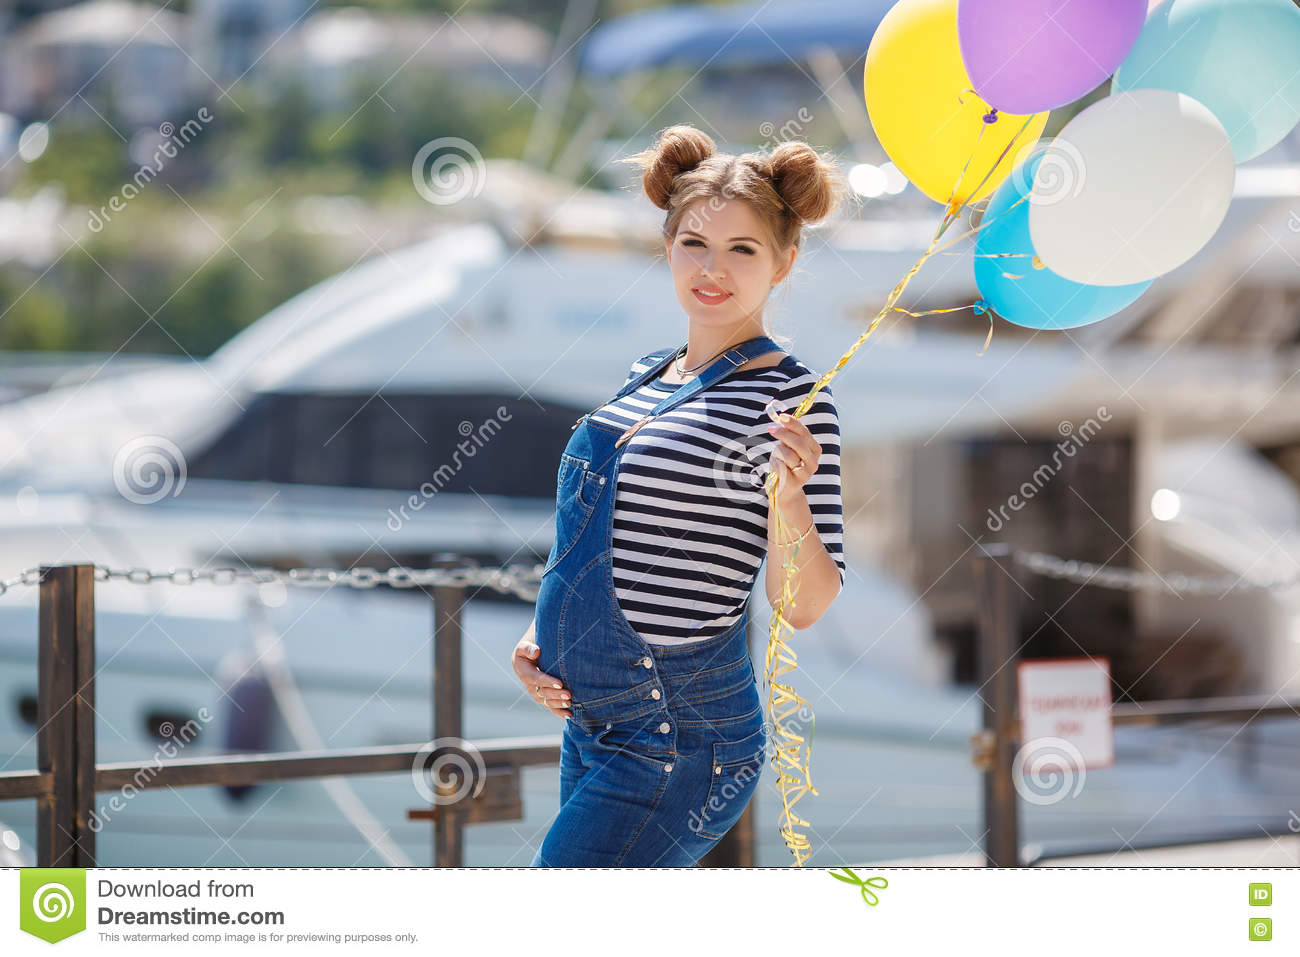 a25333d17fe2 Pregnant Woman With Colorful Balloons On The Beach Stock Photo ...